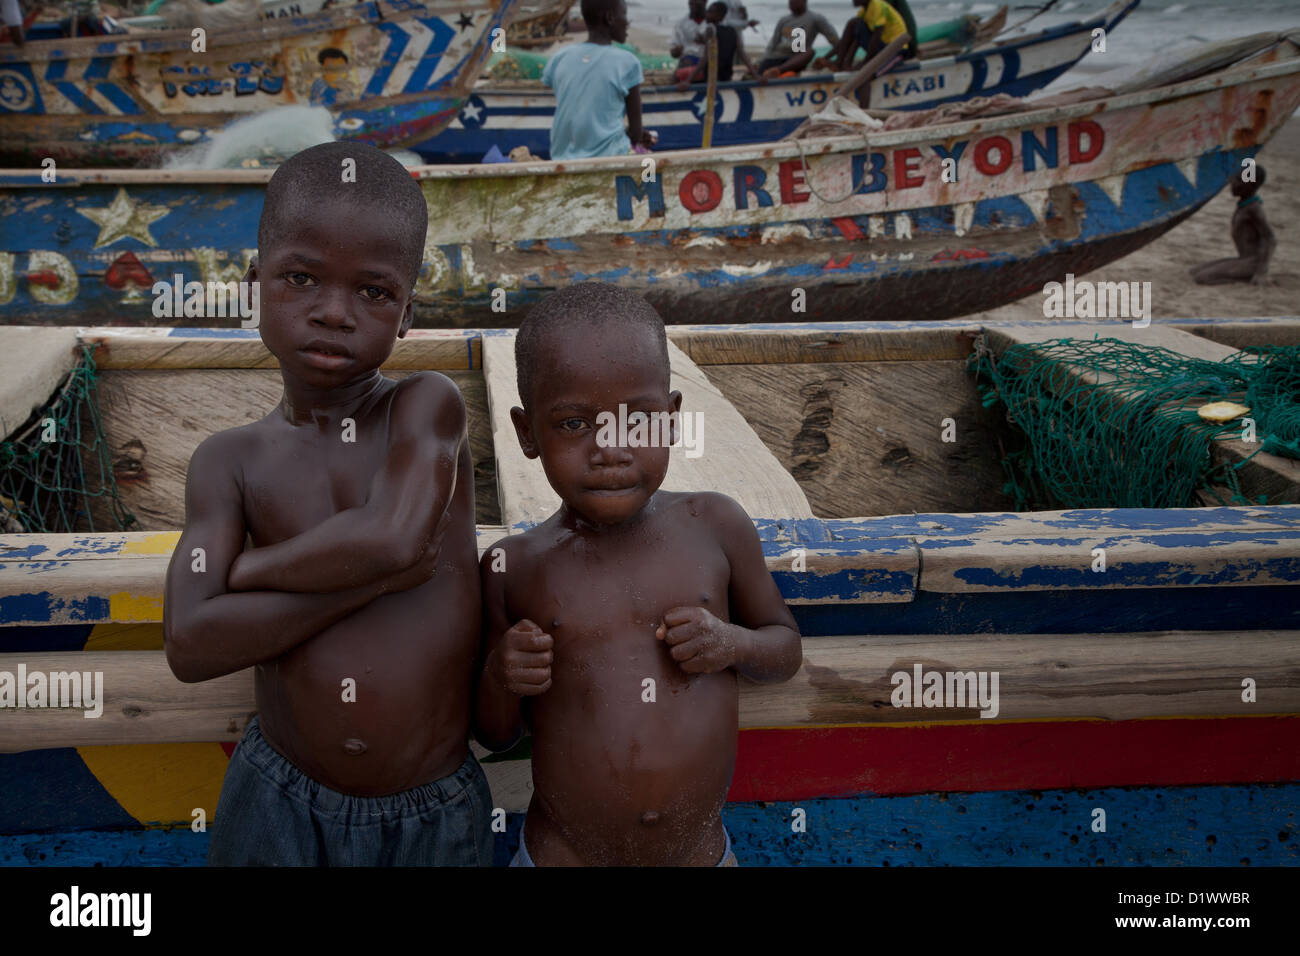 Two young boys look towards cameralean against a wooden fishing boat on a beach in Ghana. - Stock Image